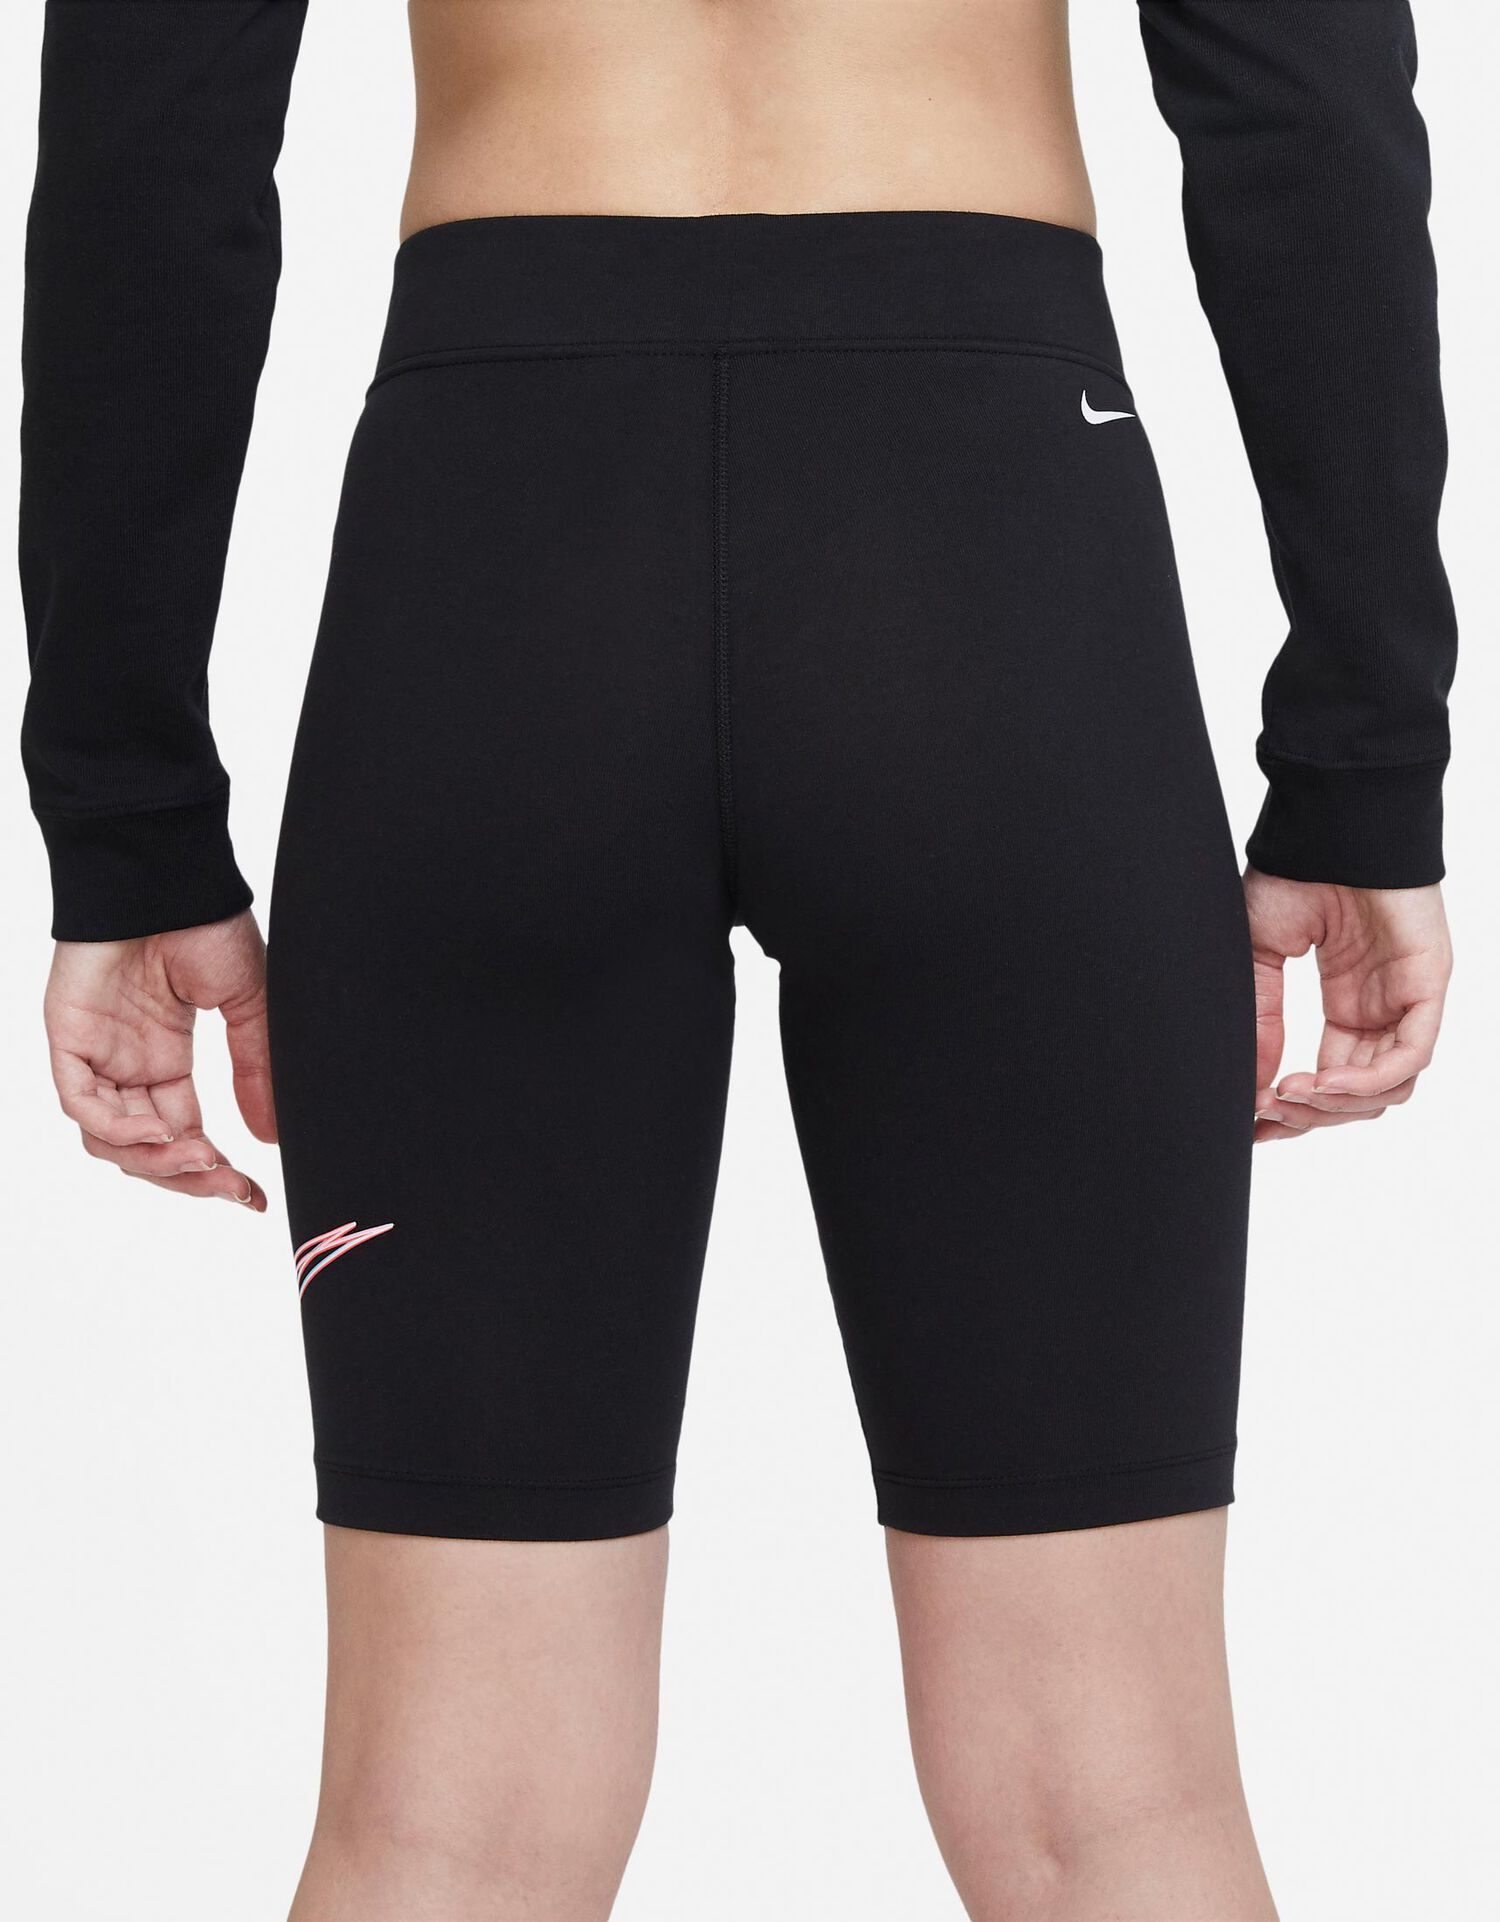 Sportswear Bike Short